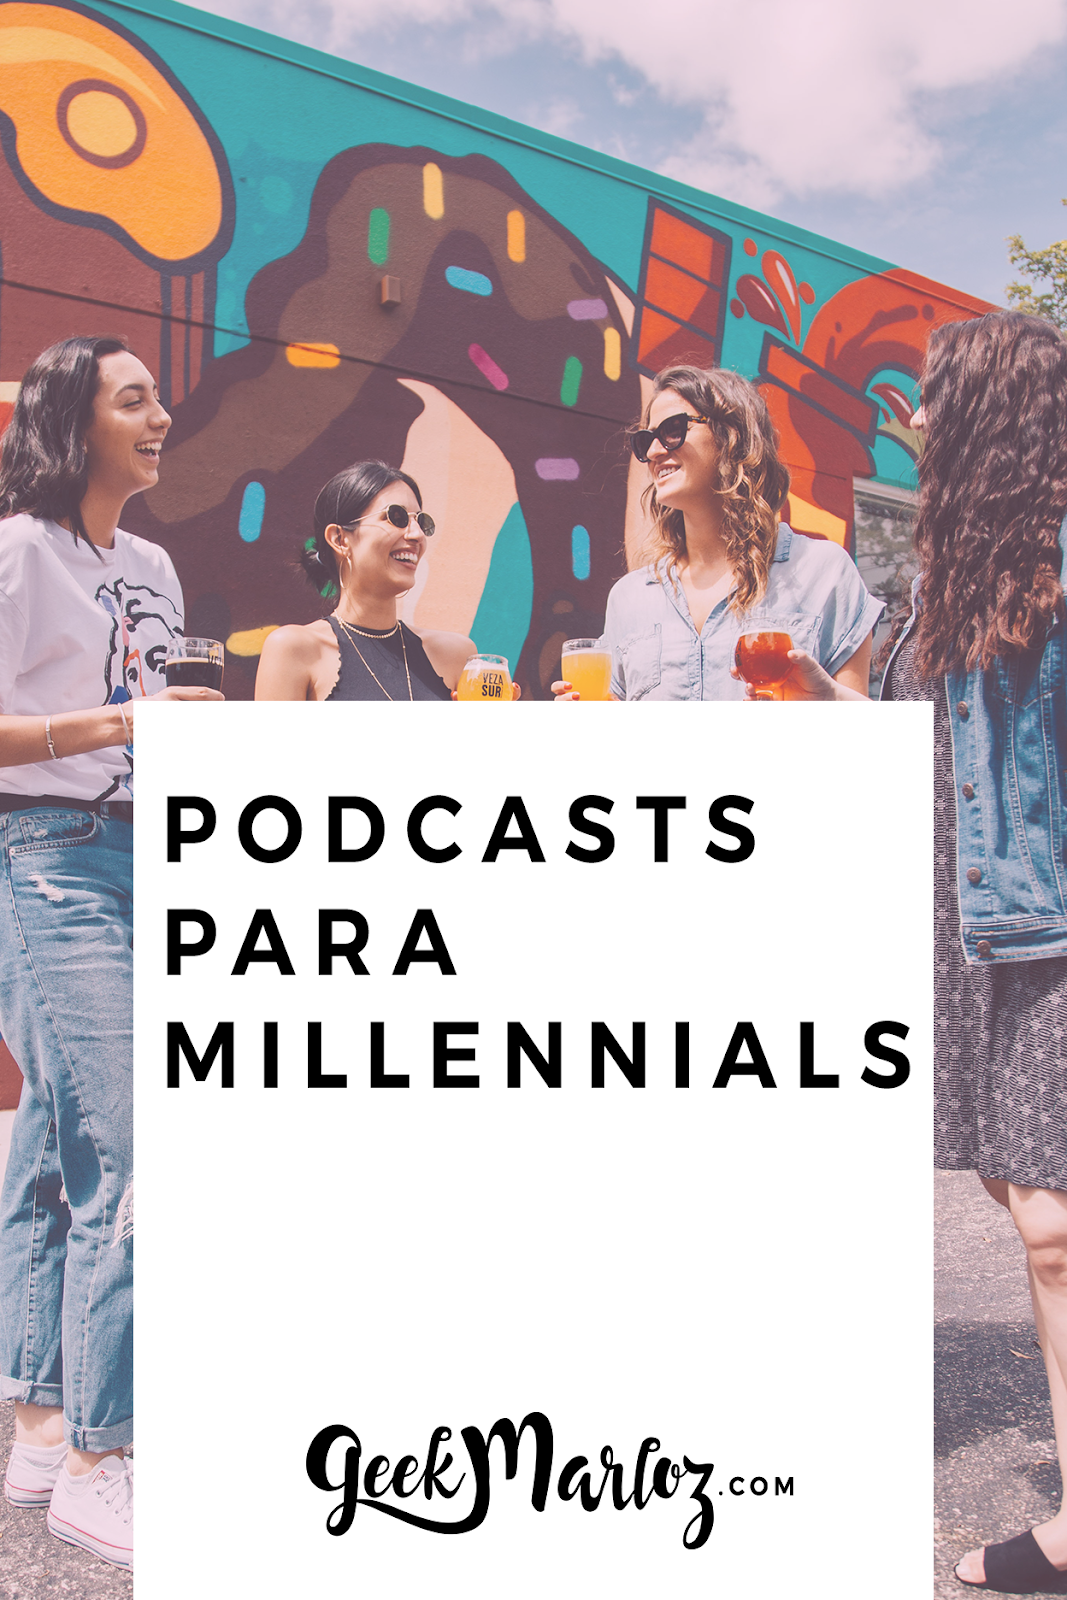 GeekMarloz / Podcasts para millennials